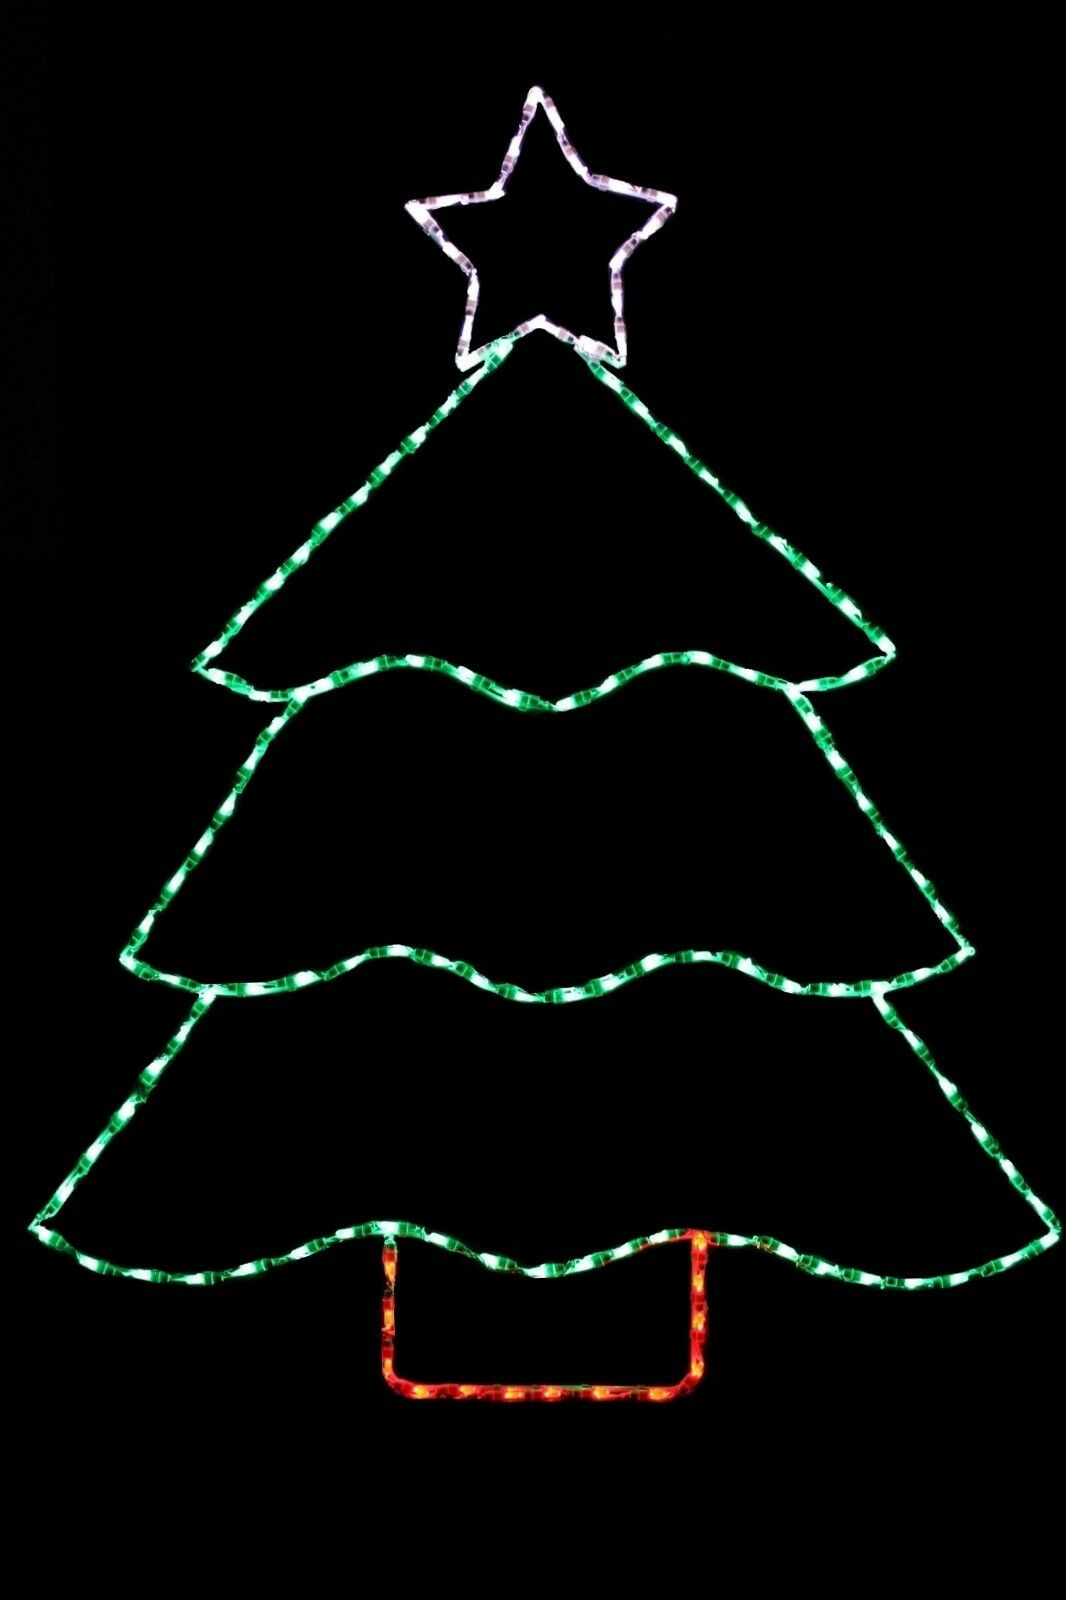 Christmas Tree With Star LED metal wire frame outdoor outdoor outdoor display 3097ac